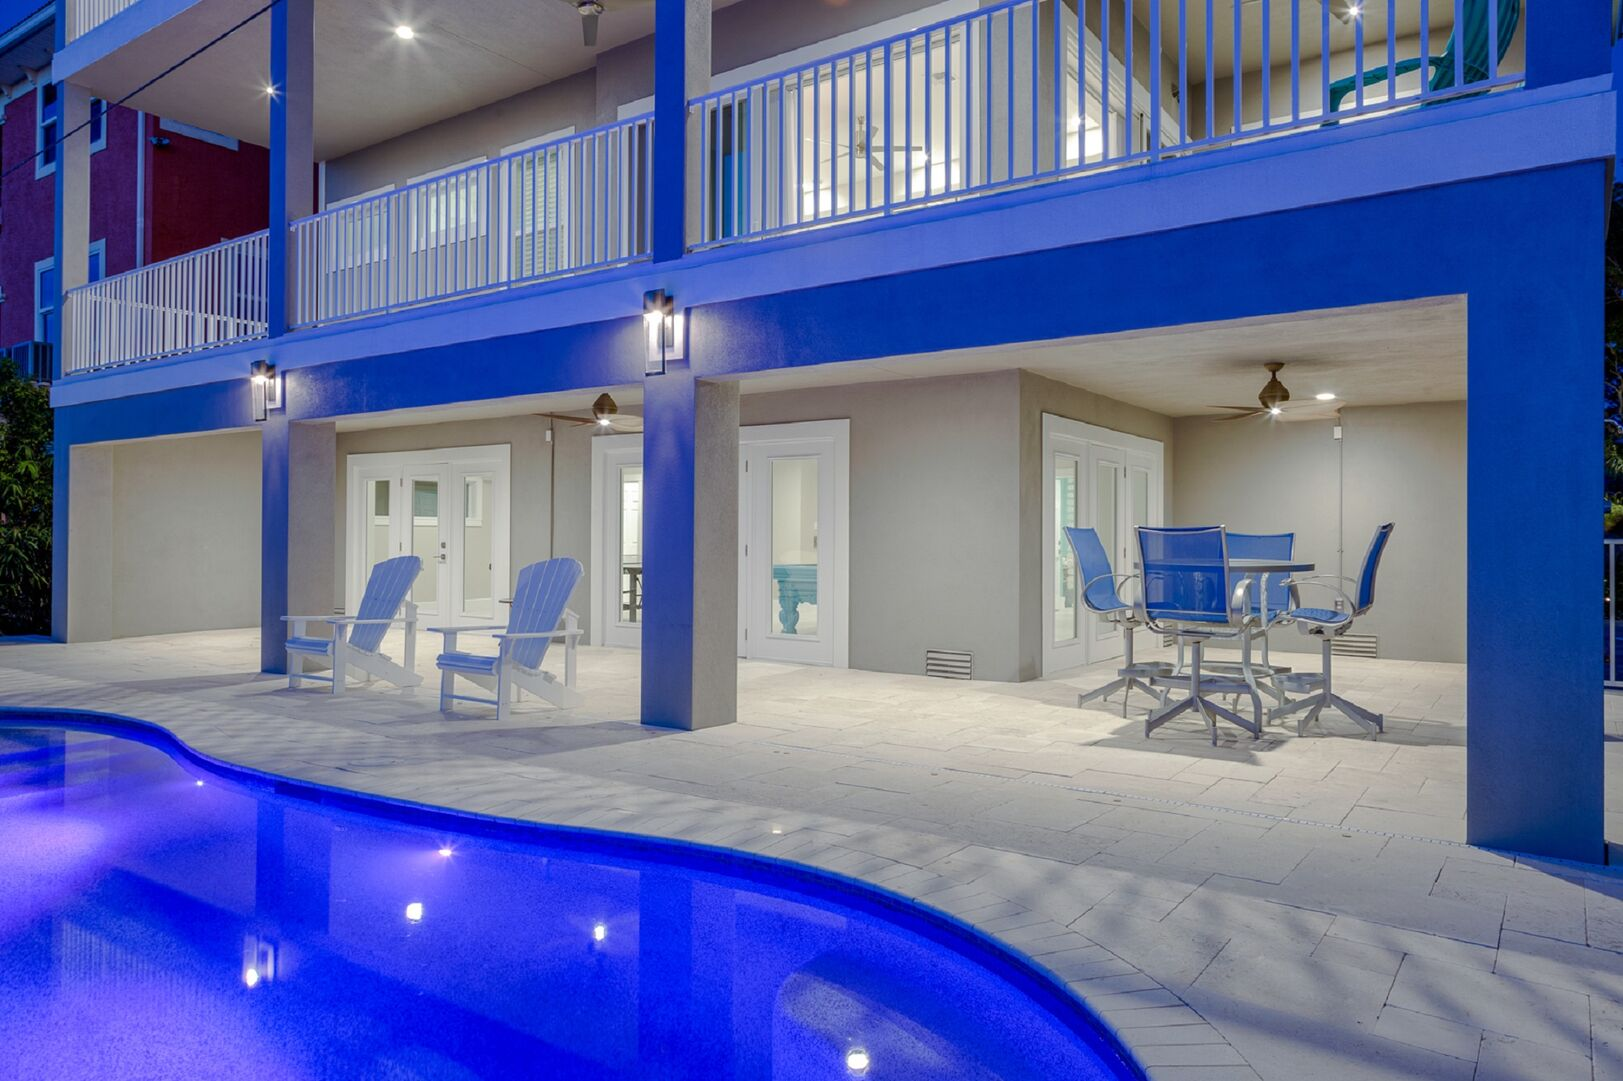 The bottom floor patio of this vacation house for rent in Fort Myers FL, right by the lit-up pool.